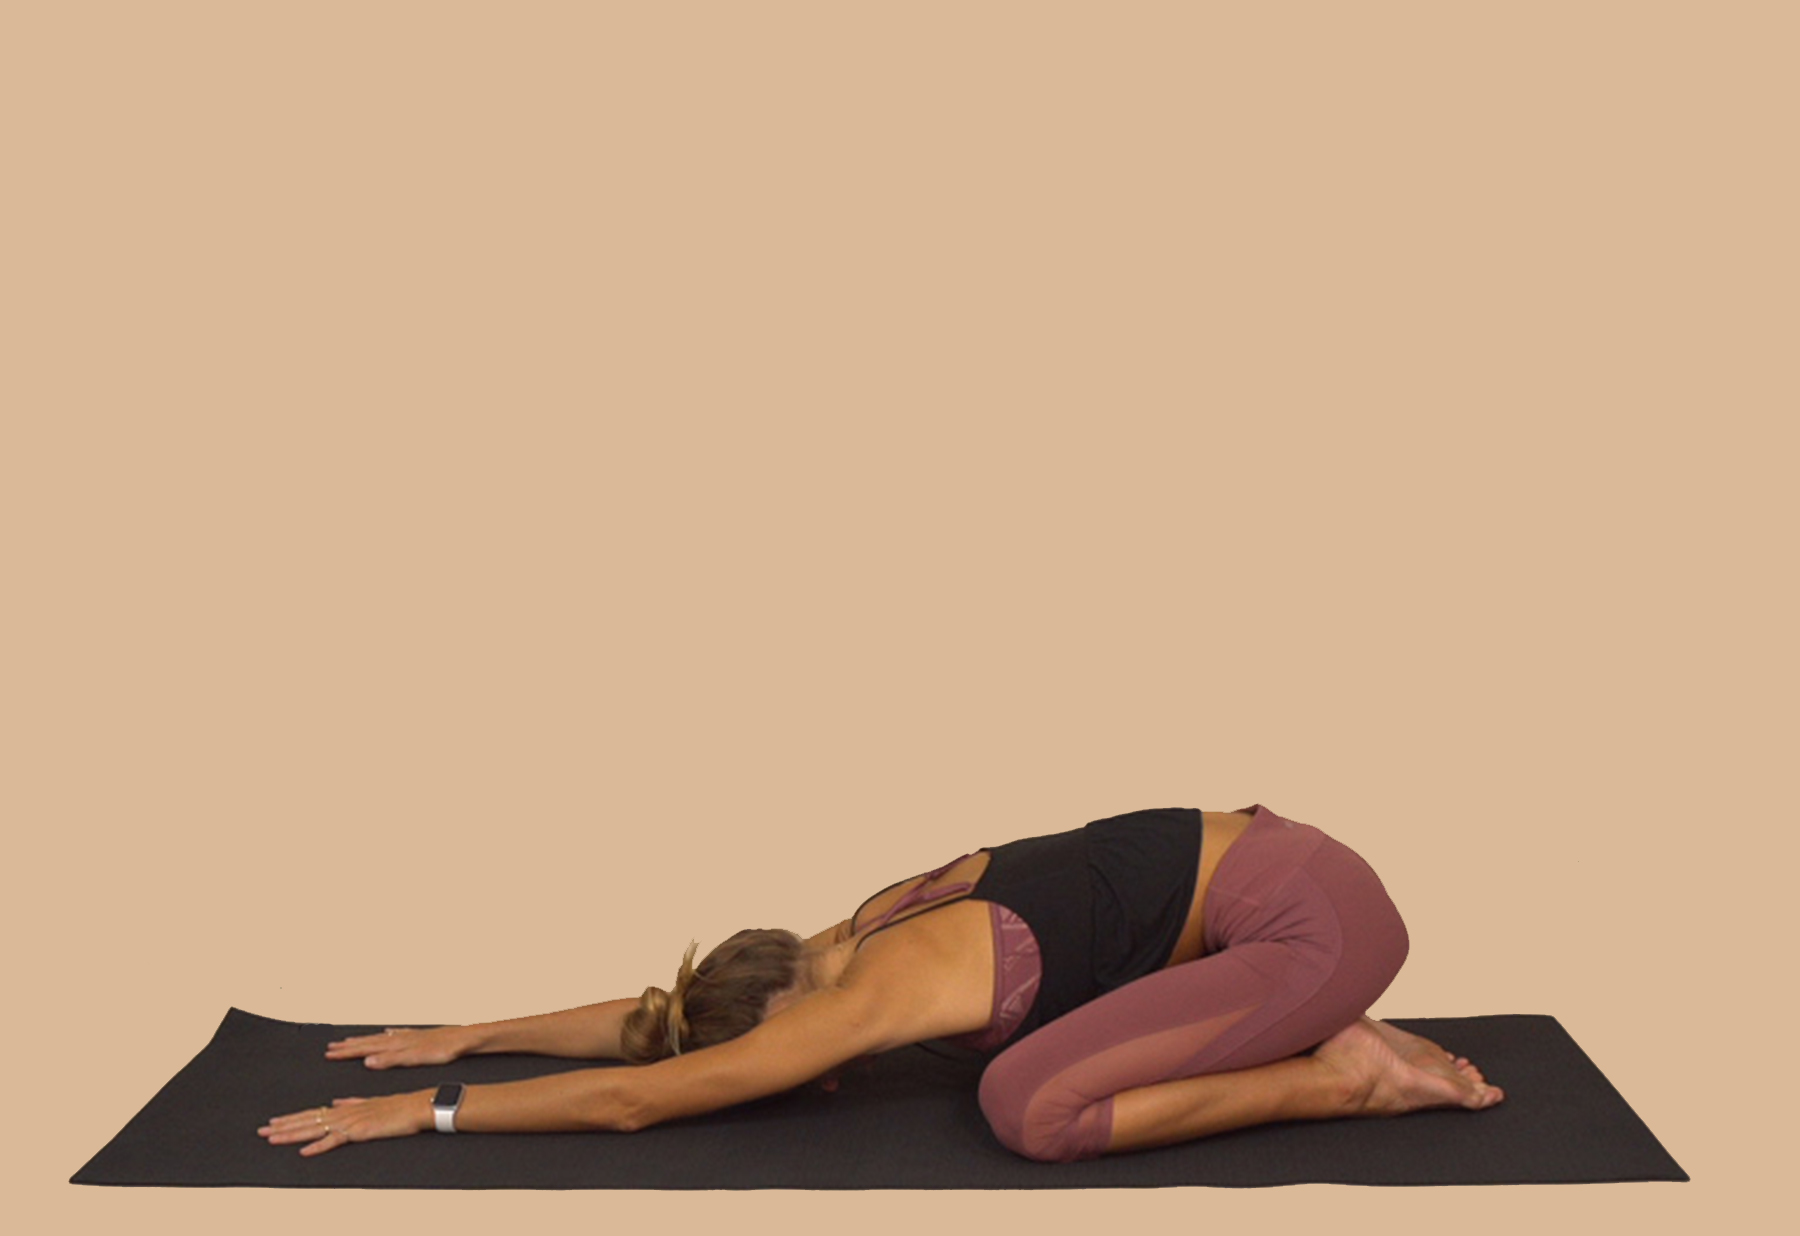 Yoga Videos: A Relaxing Flow to Beat Sunday Scaries